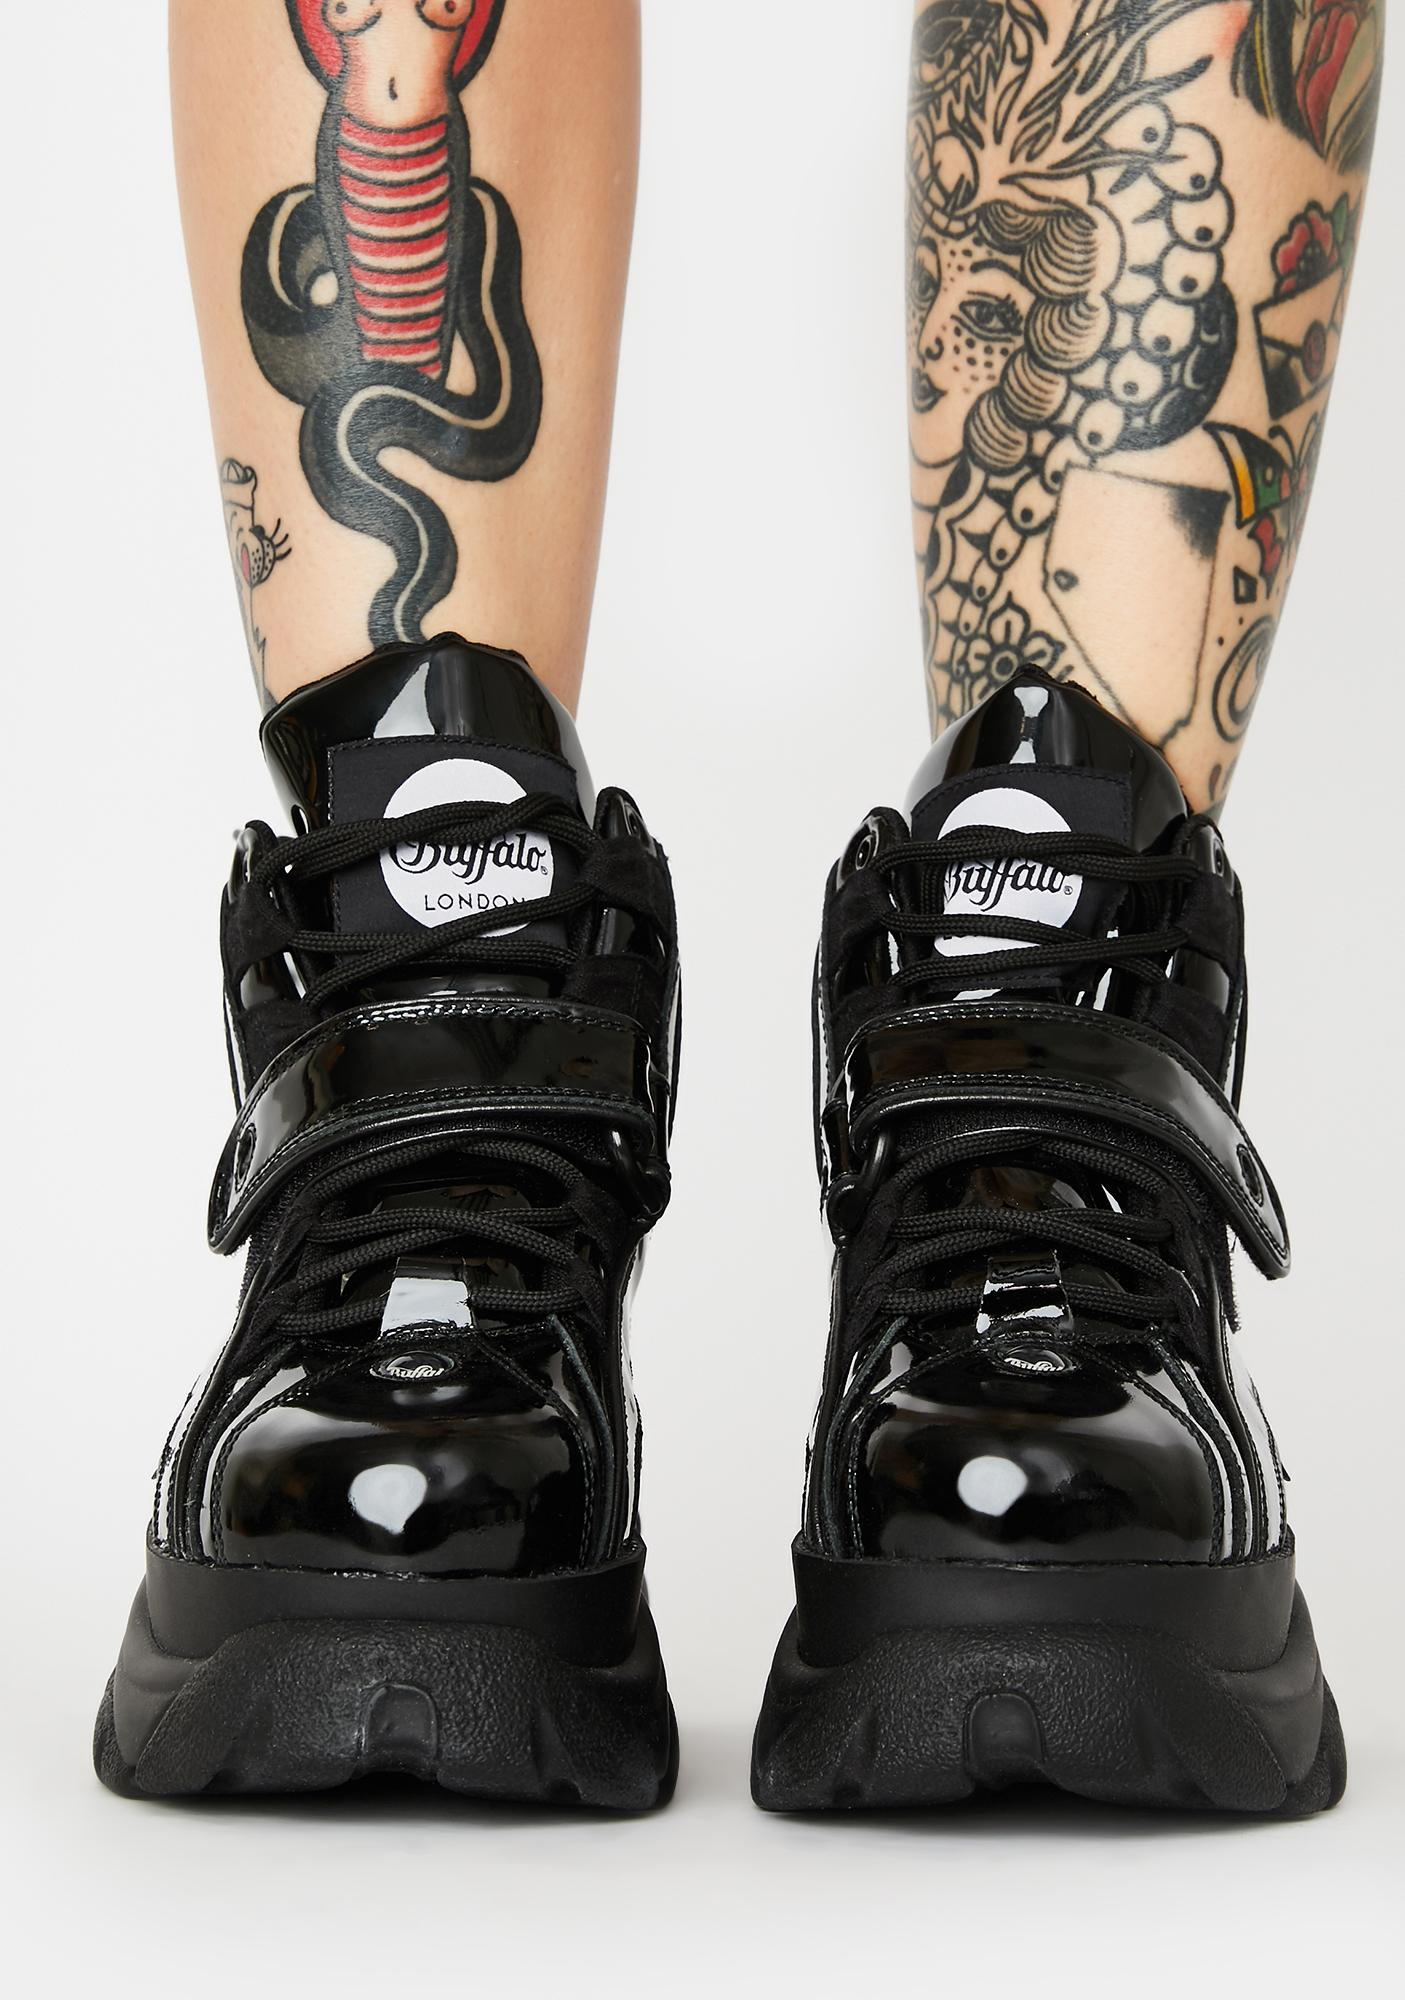 Buffalo London Classic High Patent Leather Sneakers